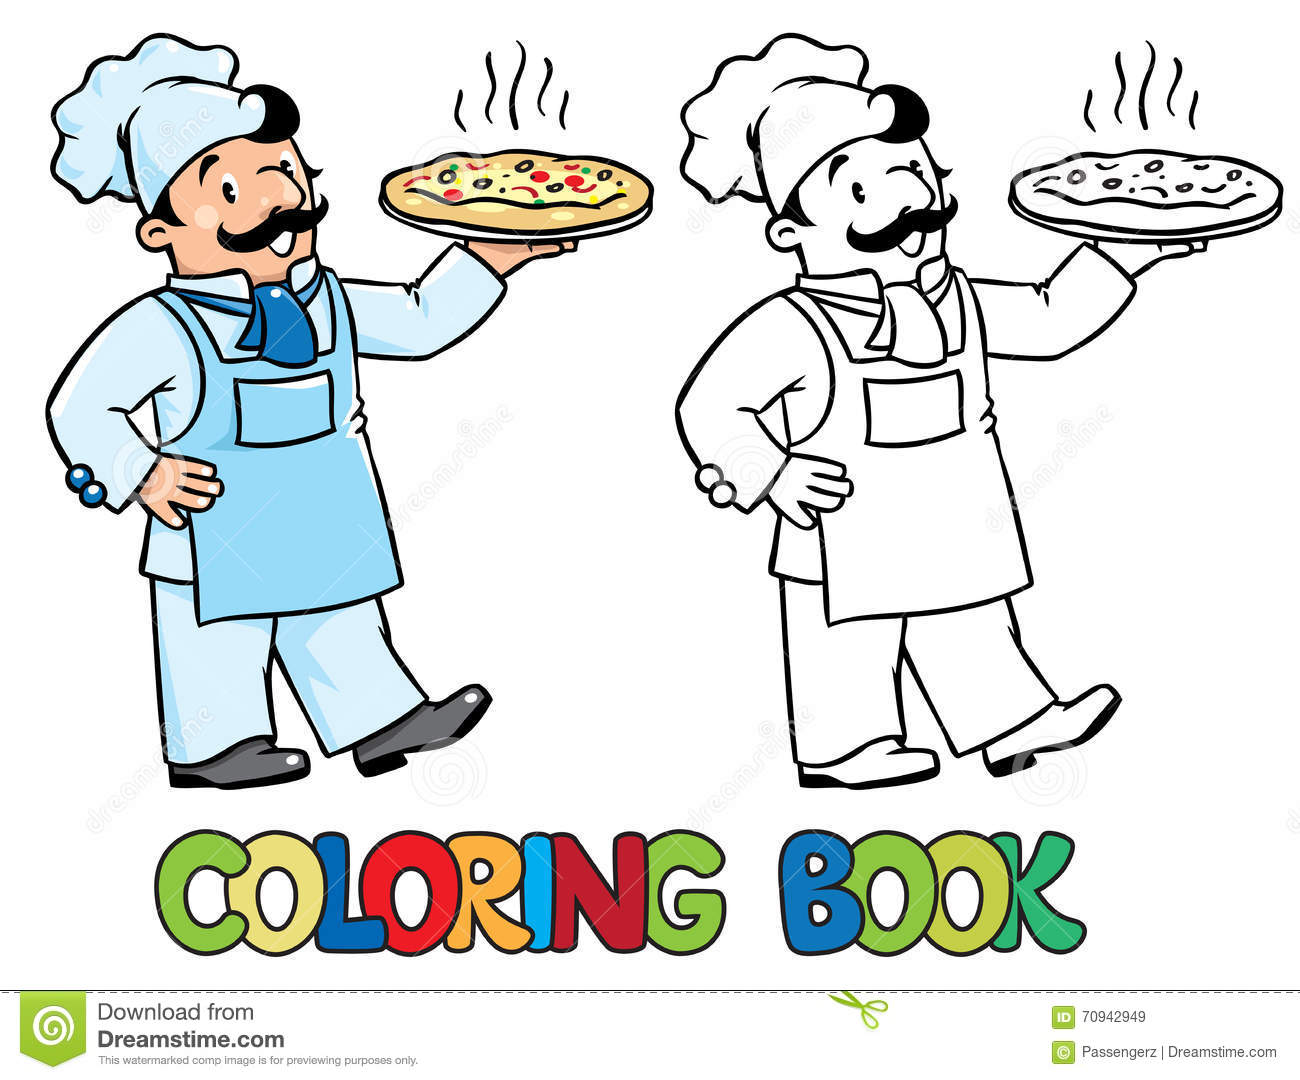 Italian Chef Coloring Book Cartoon Vector | CartoonDealer ...